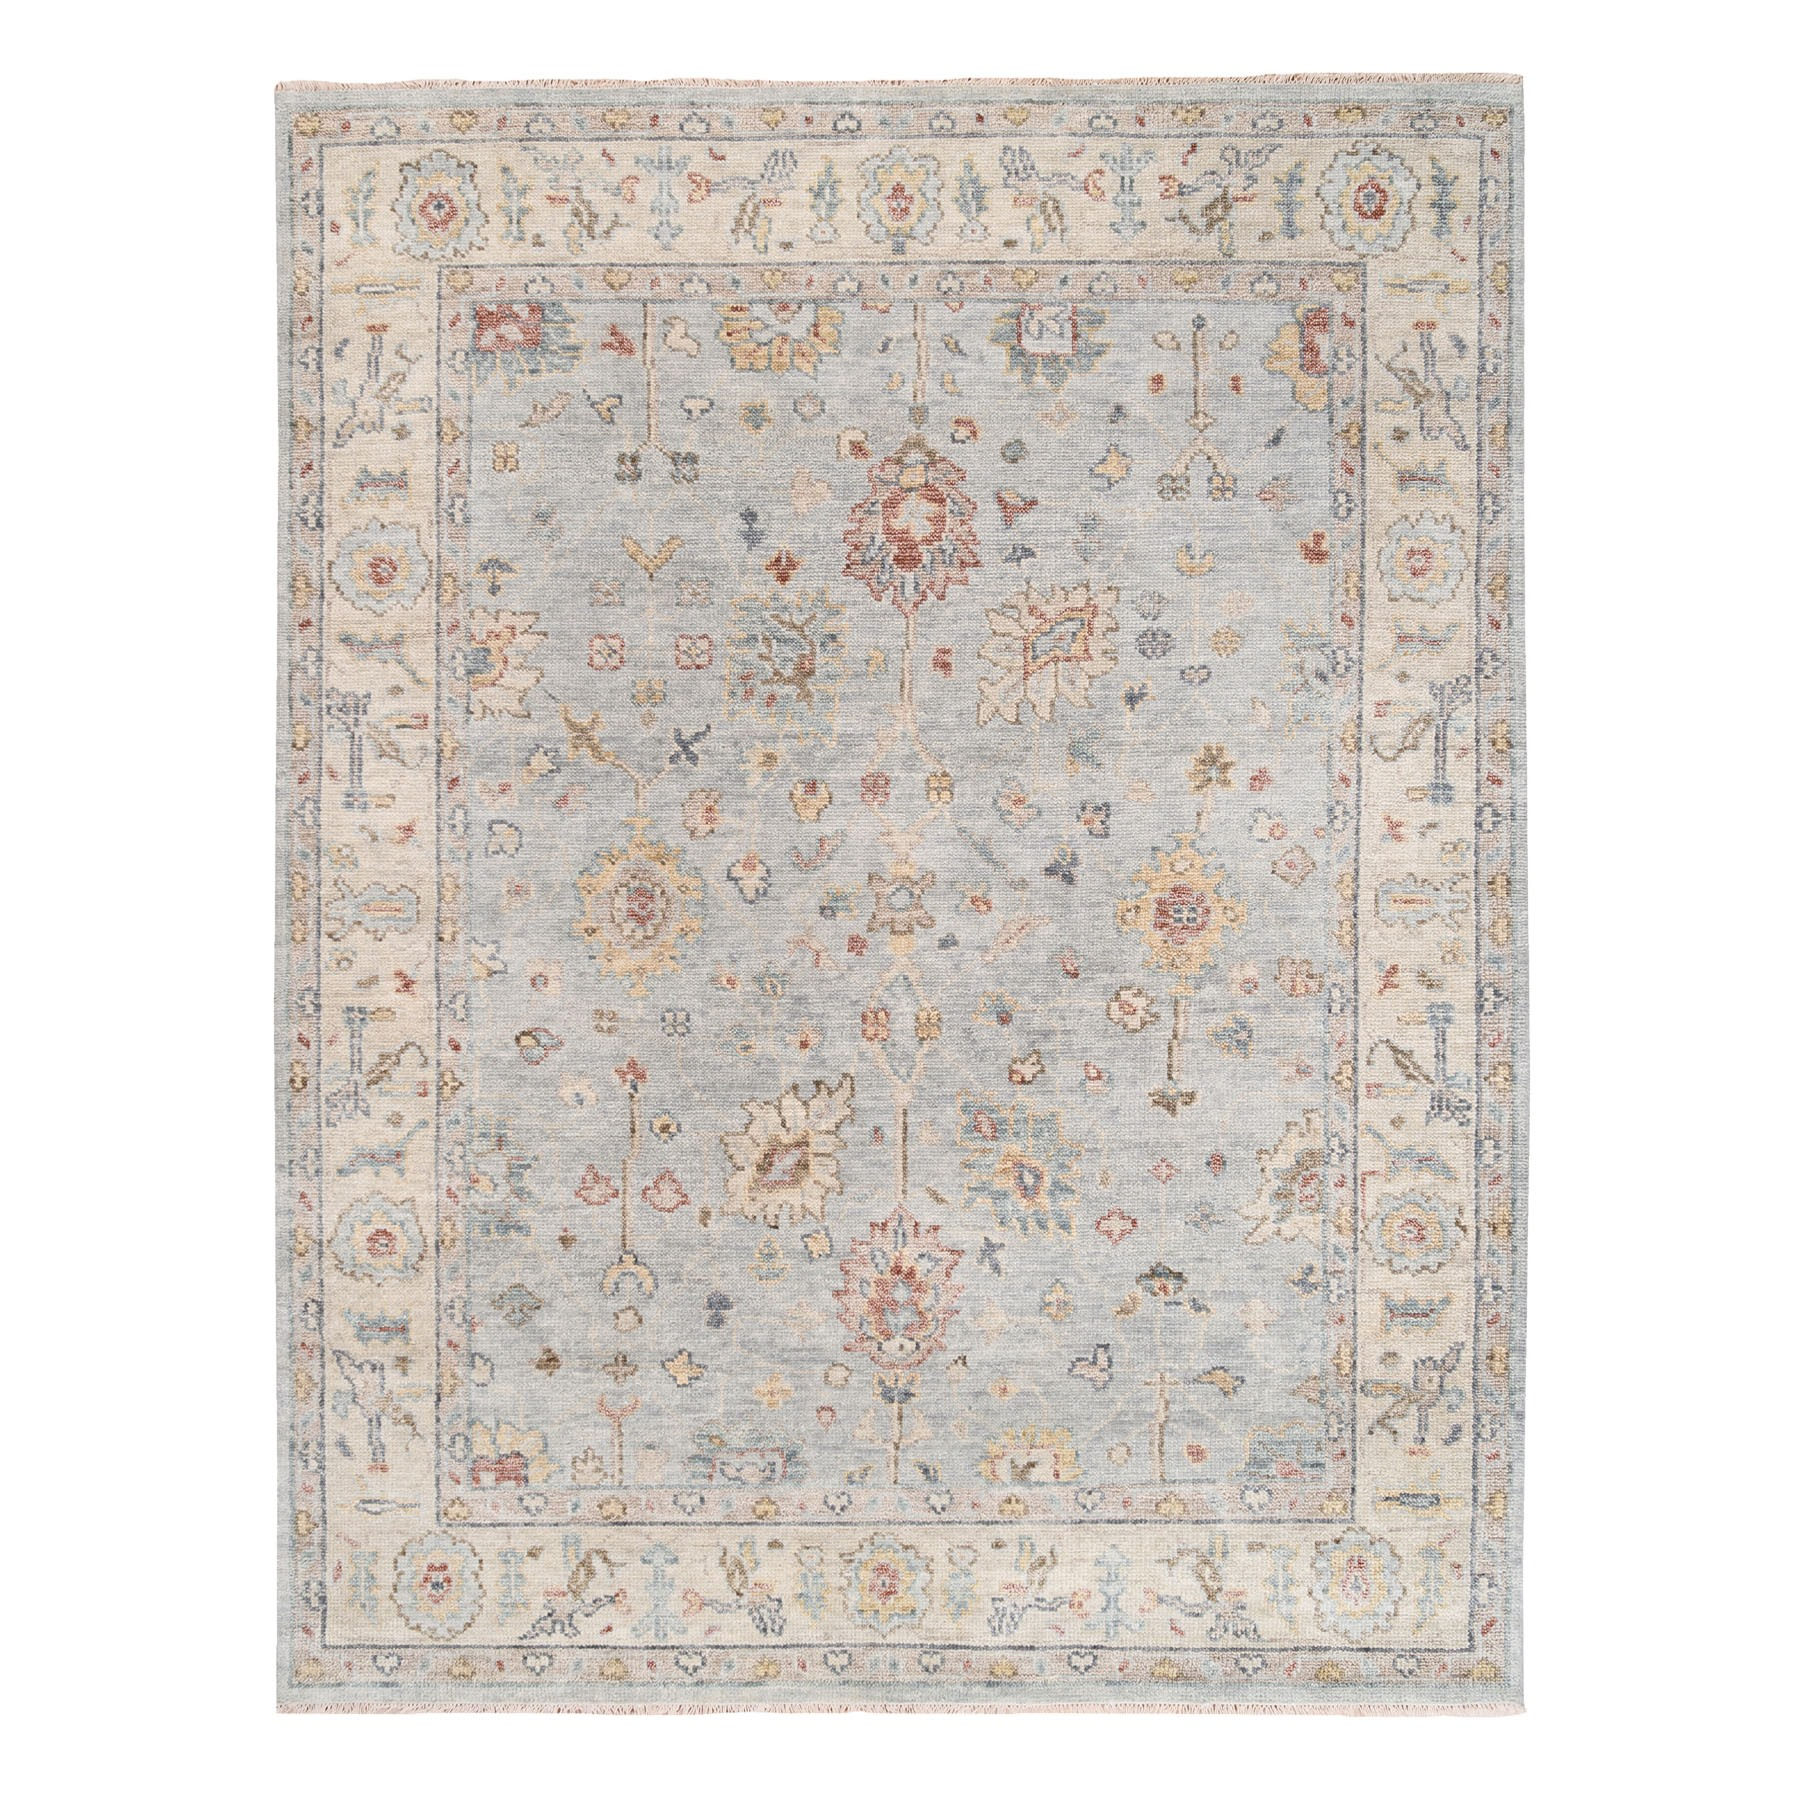 8'x10' Silver Gray Natural Wool Supple Collection Oushak Design Hand Knotted Oriental Rug